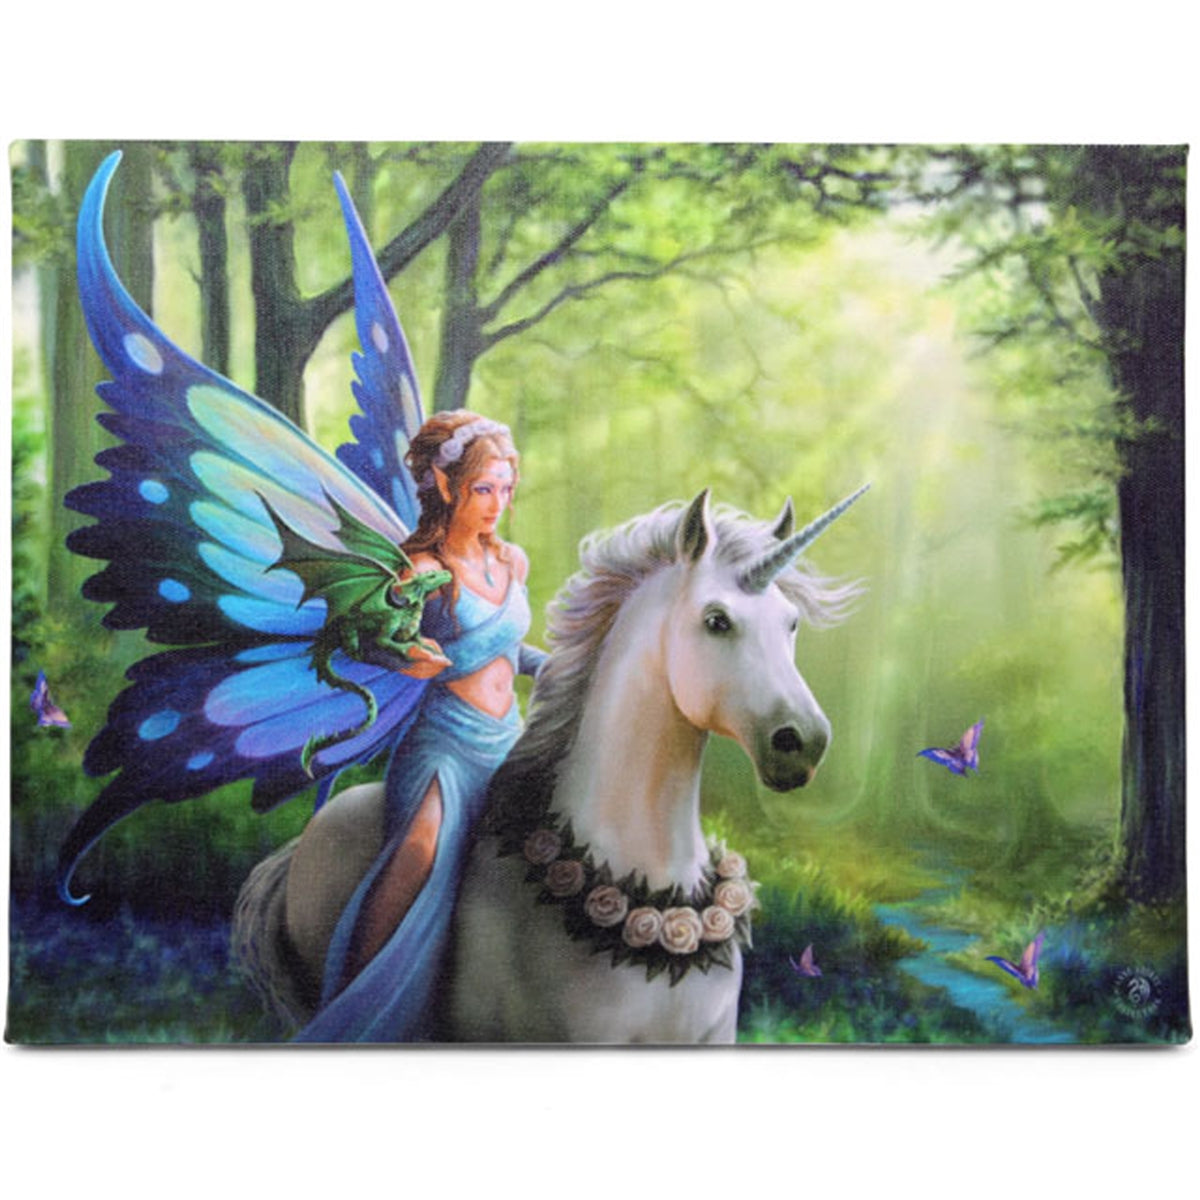 REALM OF ENCHANTMENT CANVAS ART PRINT BY ANNE STOKES - Tree Of Life Shoppe